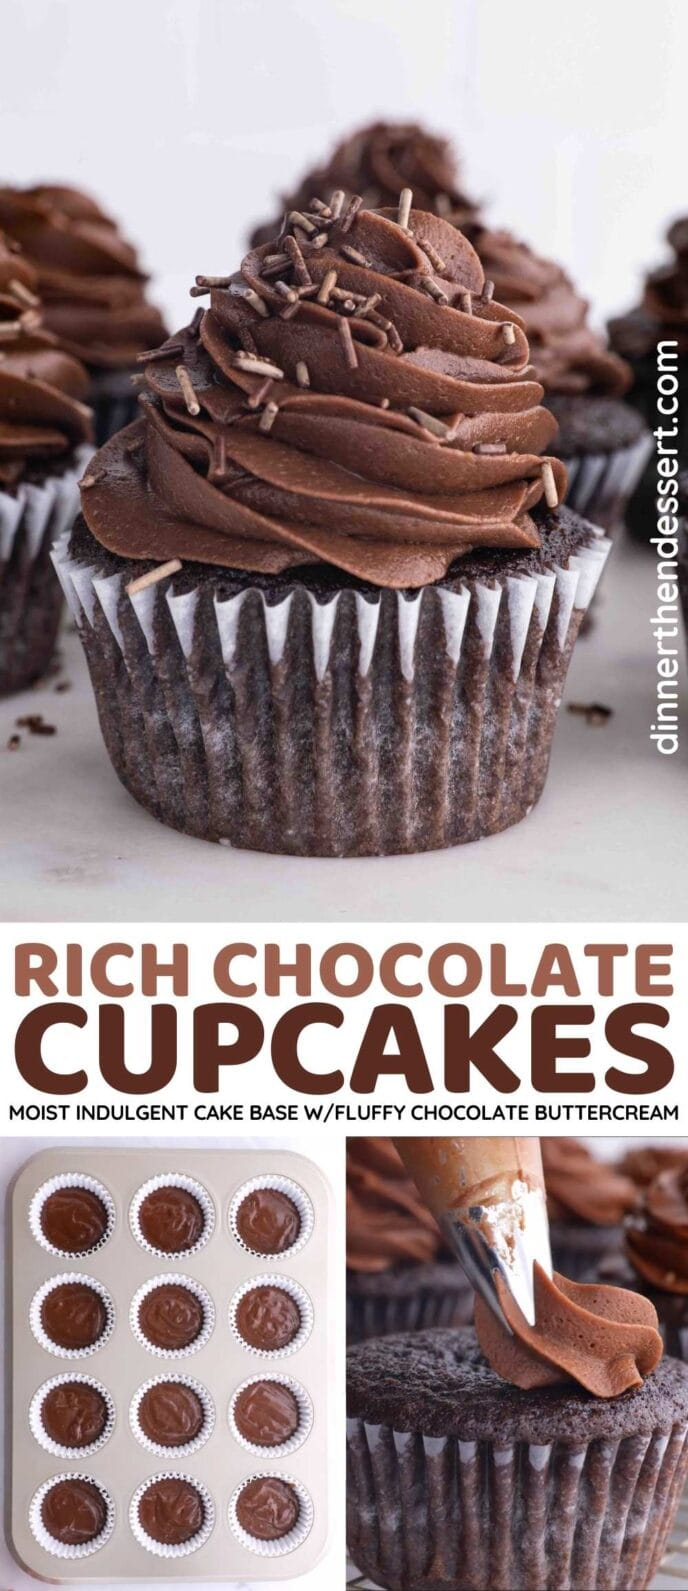 Rich Chocolate Cupcakes Collage